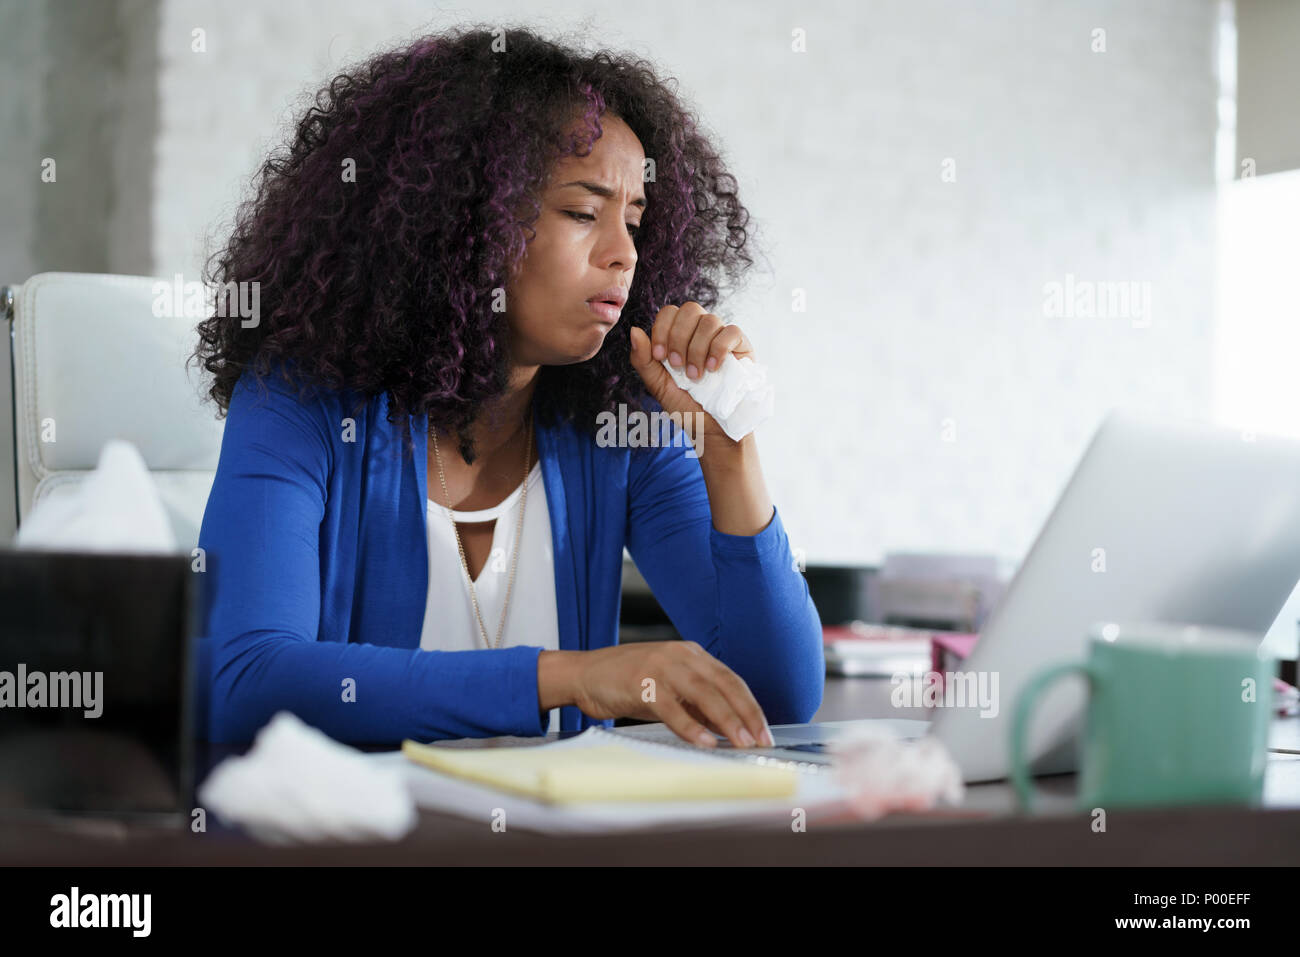 Sick African American Girl Working From Home Office. Ill